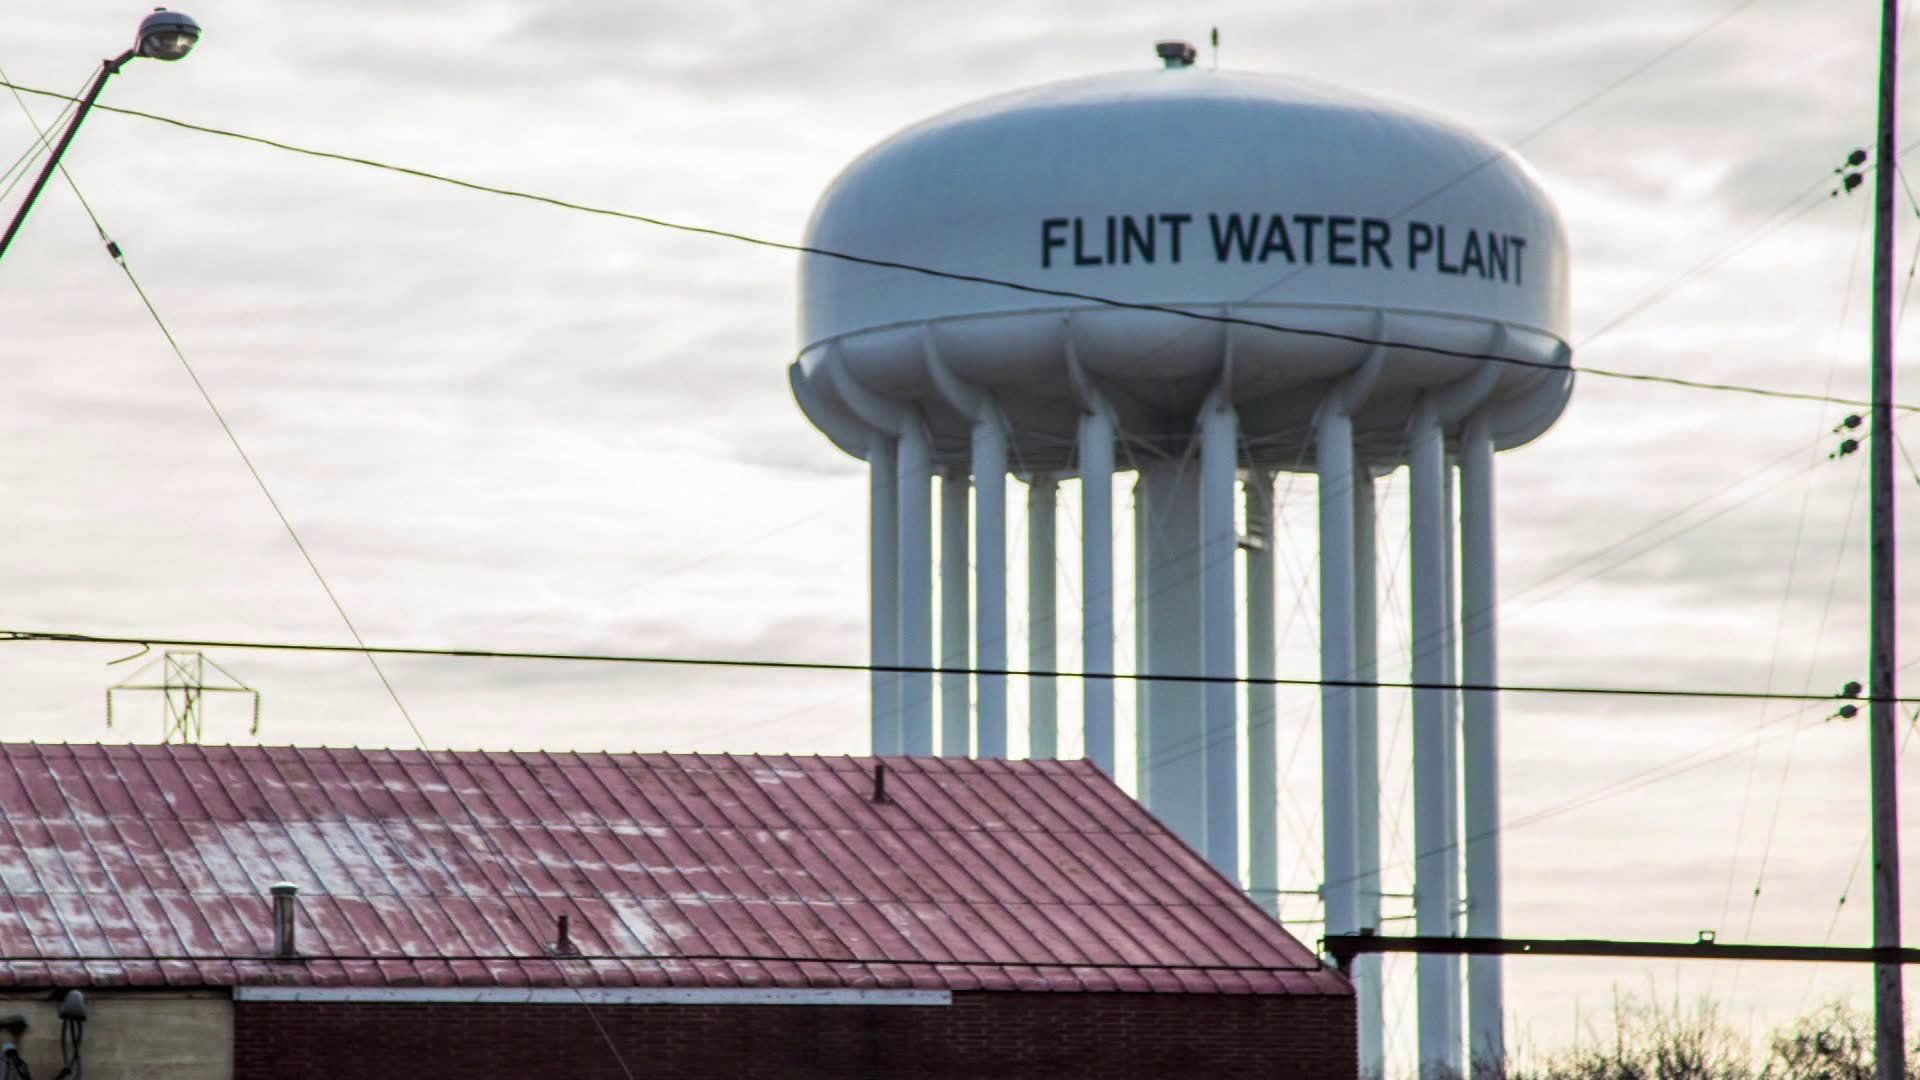 Flint preparing to sue state of michigan over lead tainted